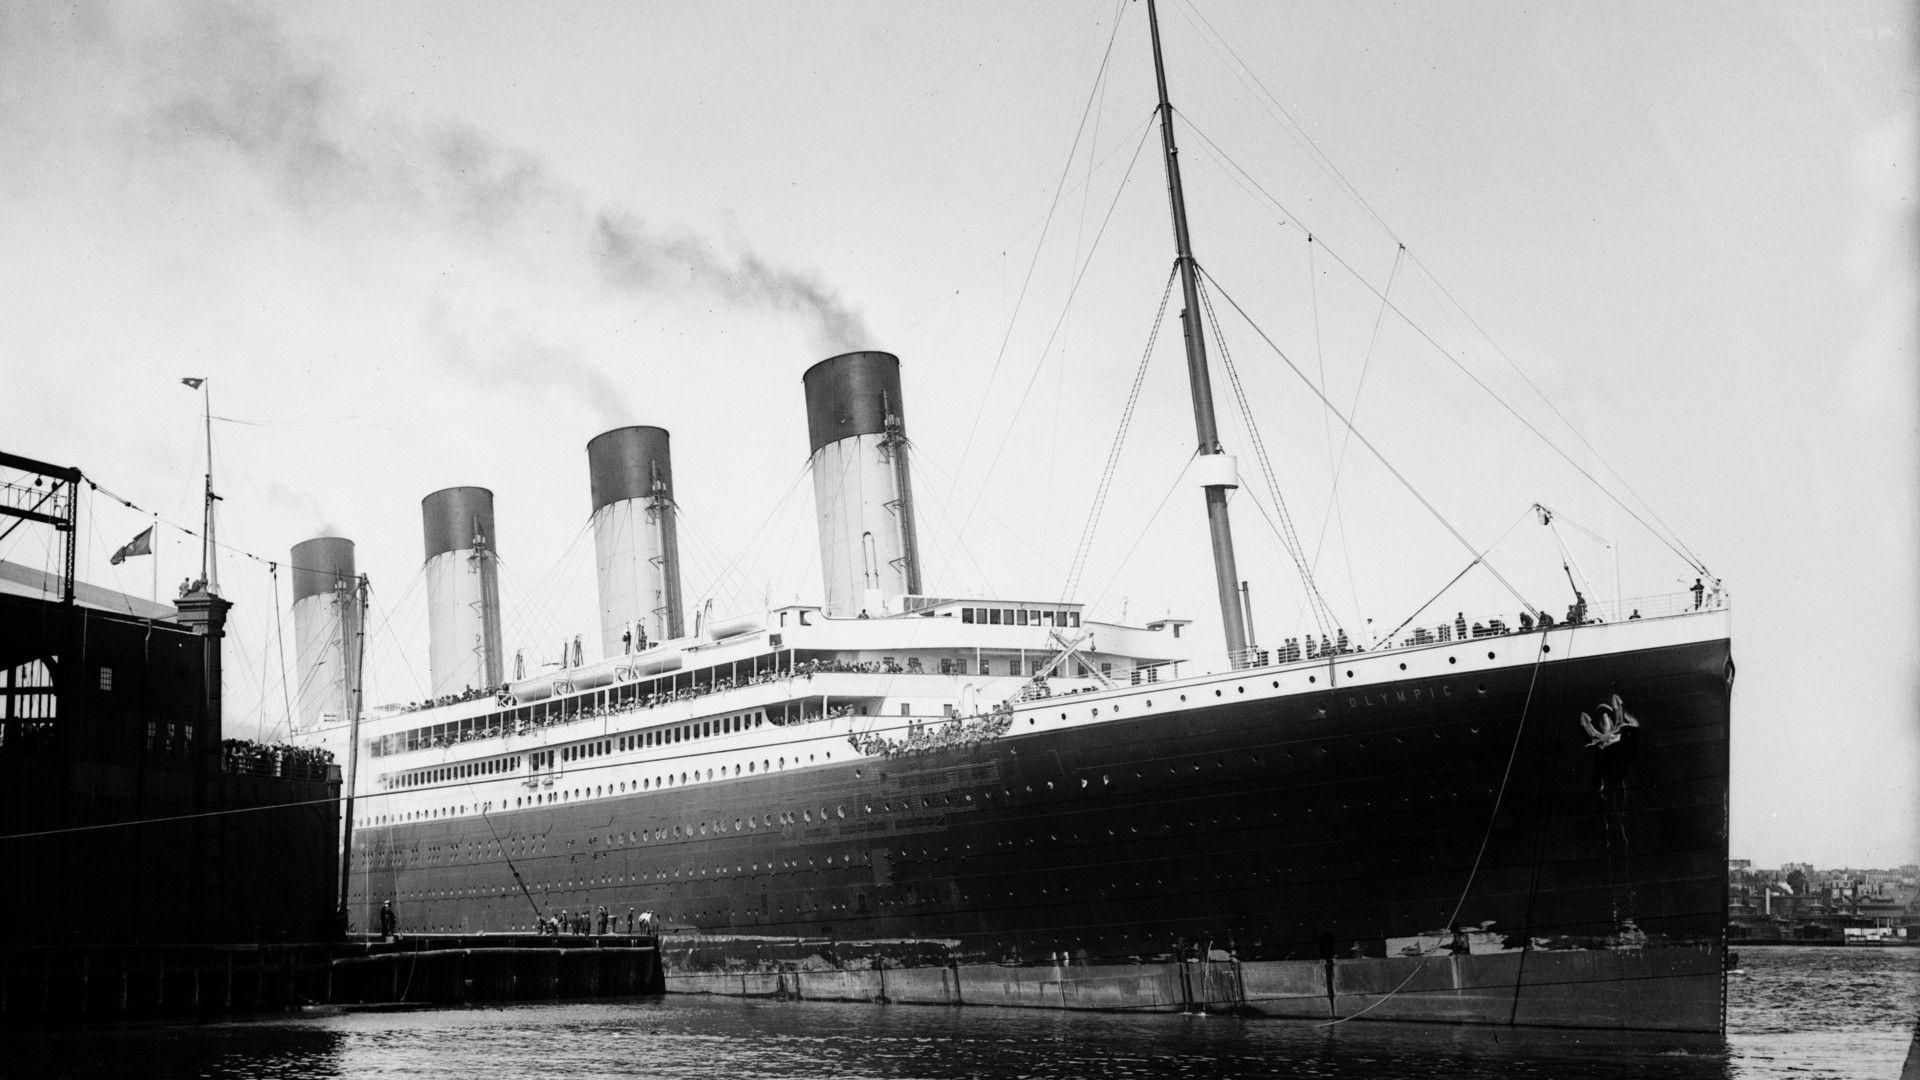 titanic ship images free - photo #15